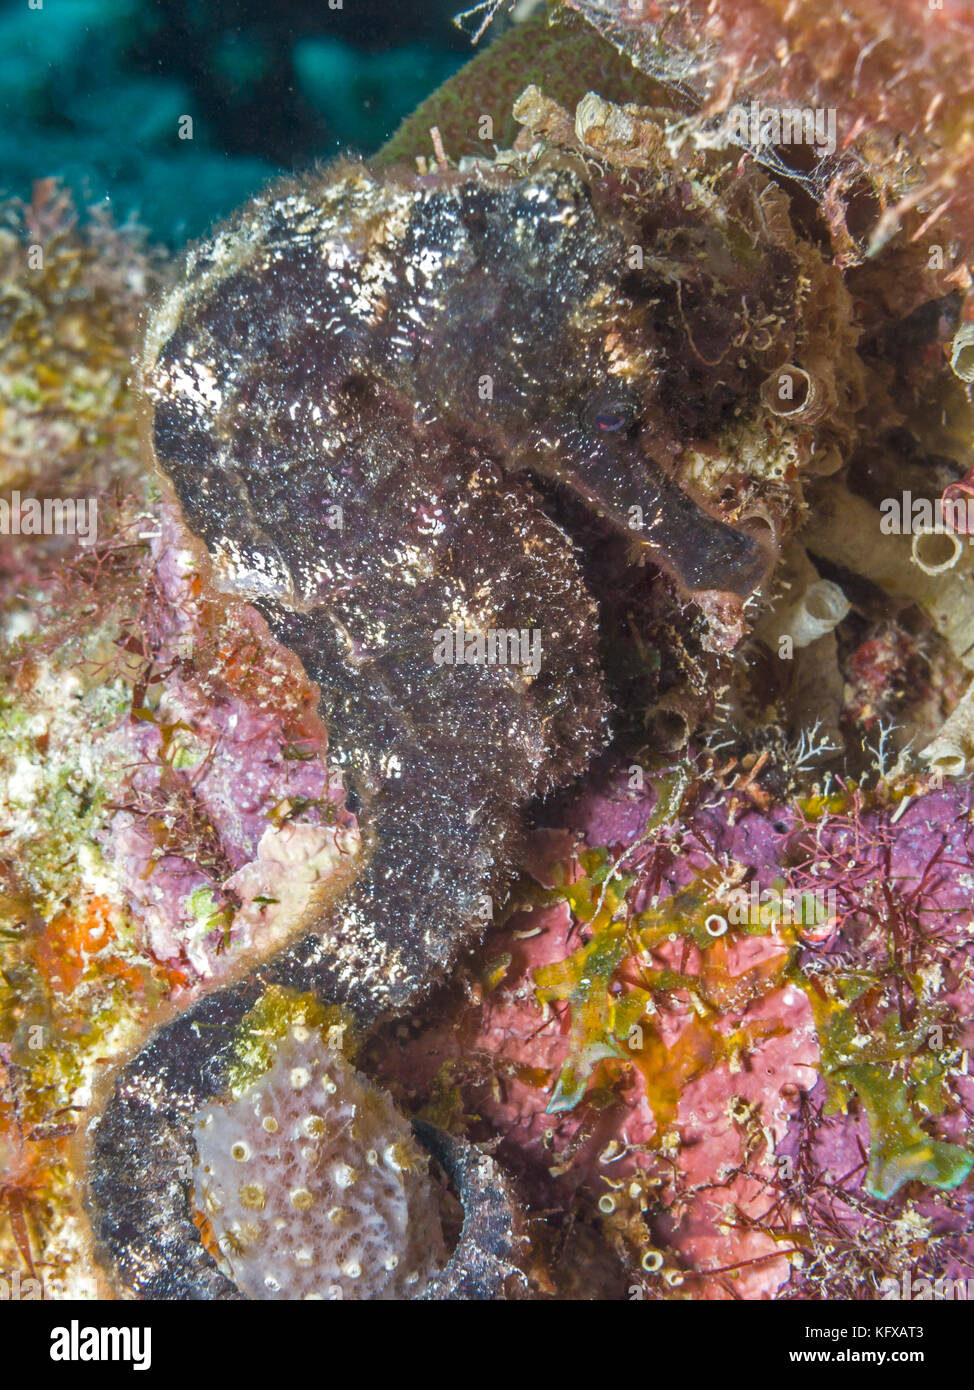 Spotted seahorse stock photos spotted seahorse stock for Is a seahorse a fish